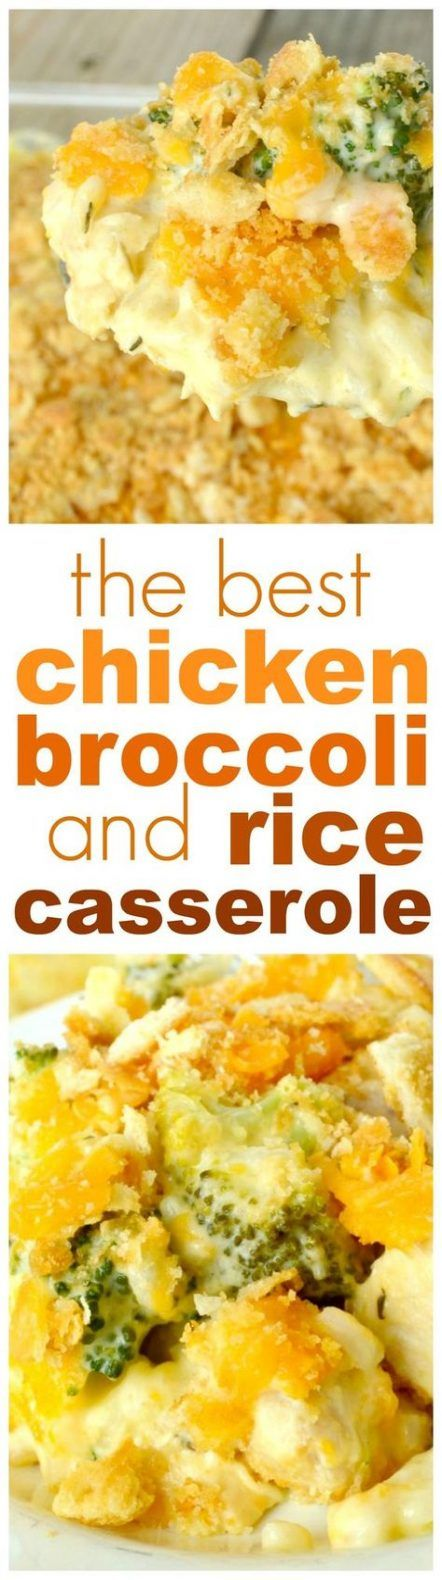 Chicken recipes casserole ritz crackers comfort foods 50 super ideas